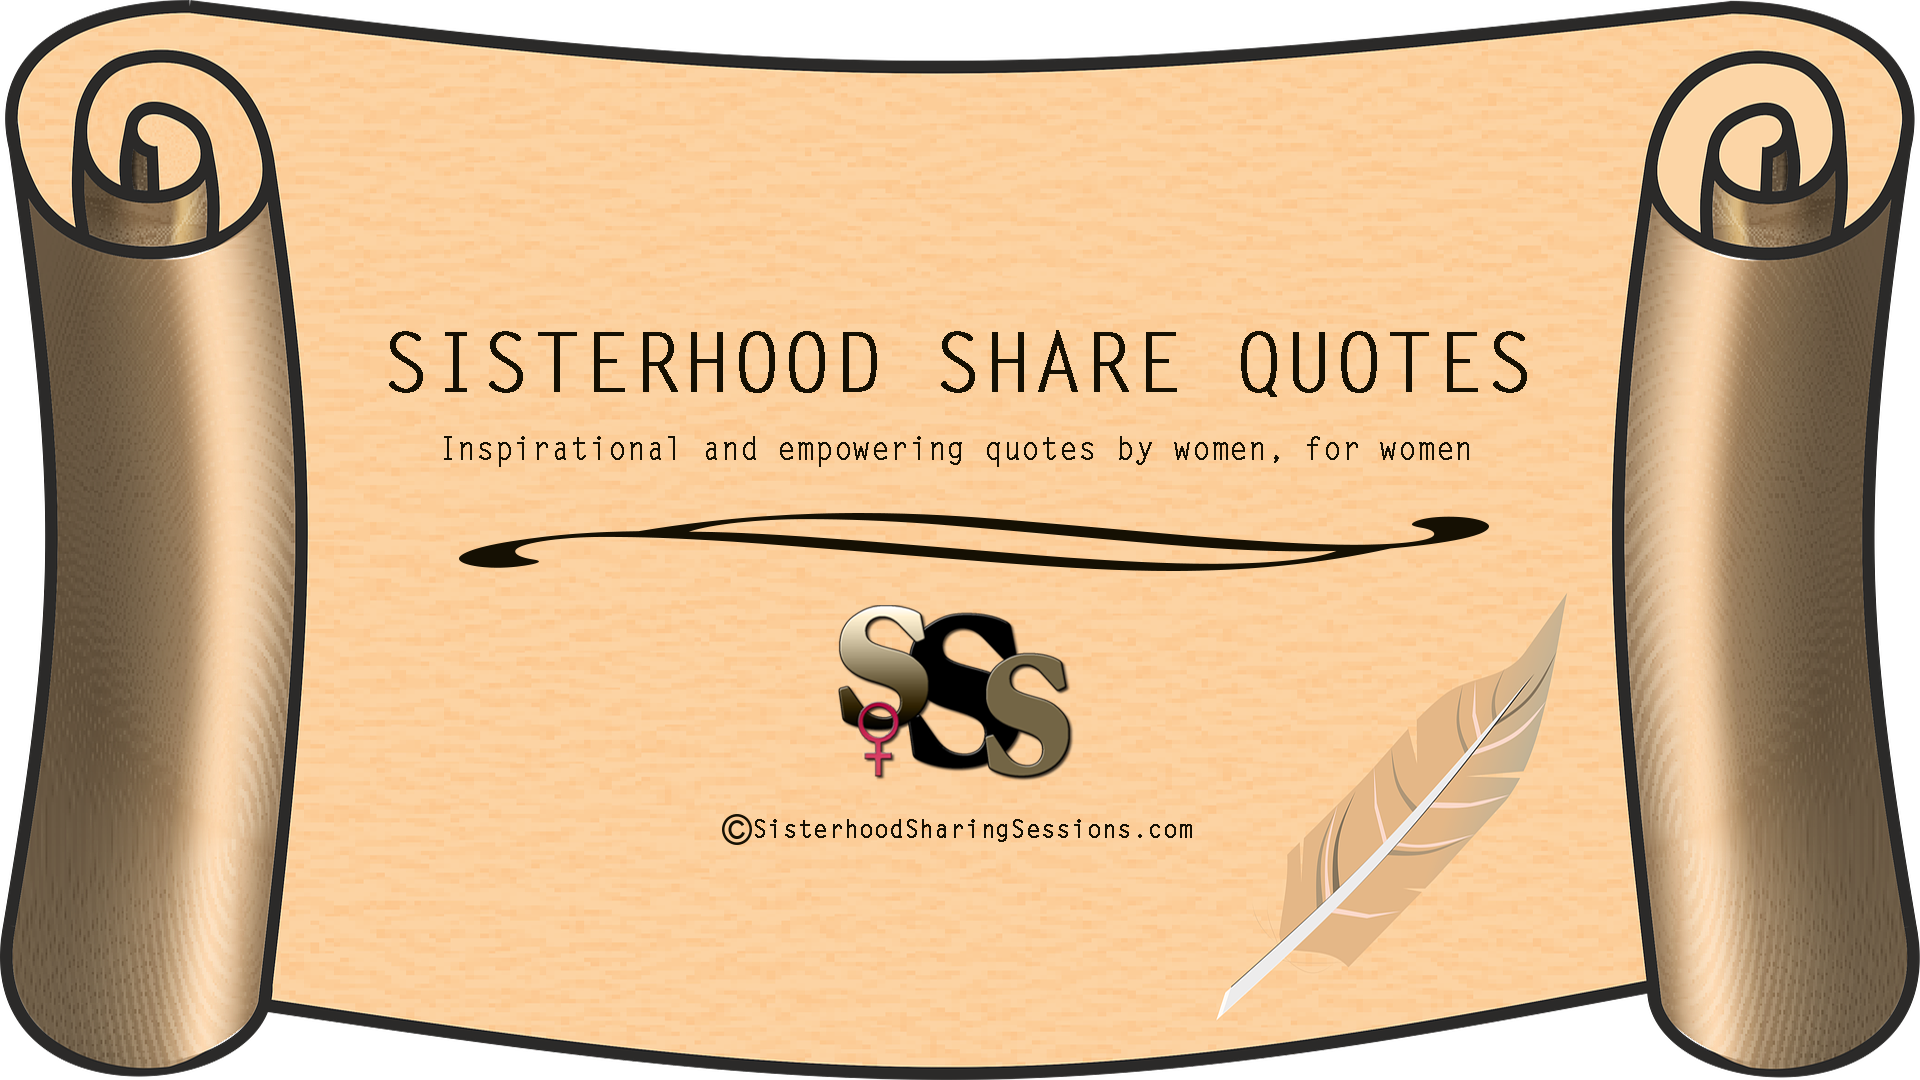 Sisterhood Sharing Sessions | Sisterhood Share Quotes